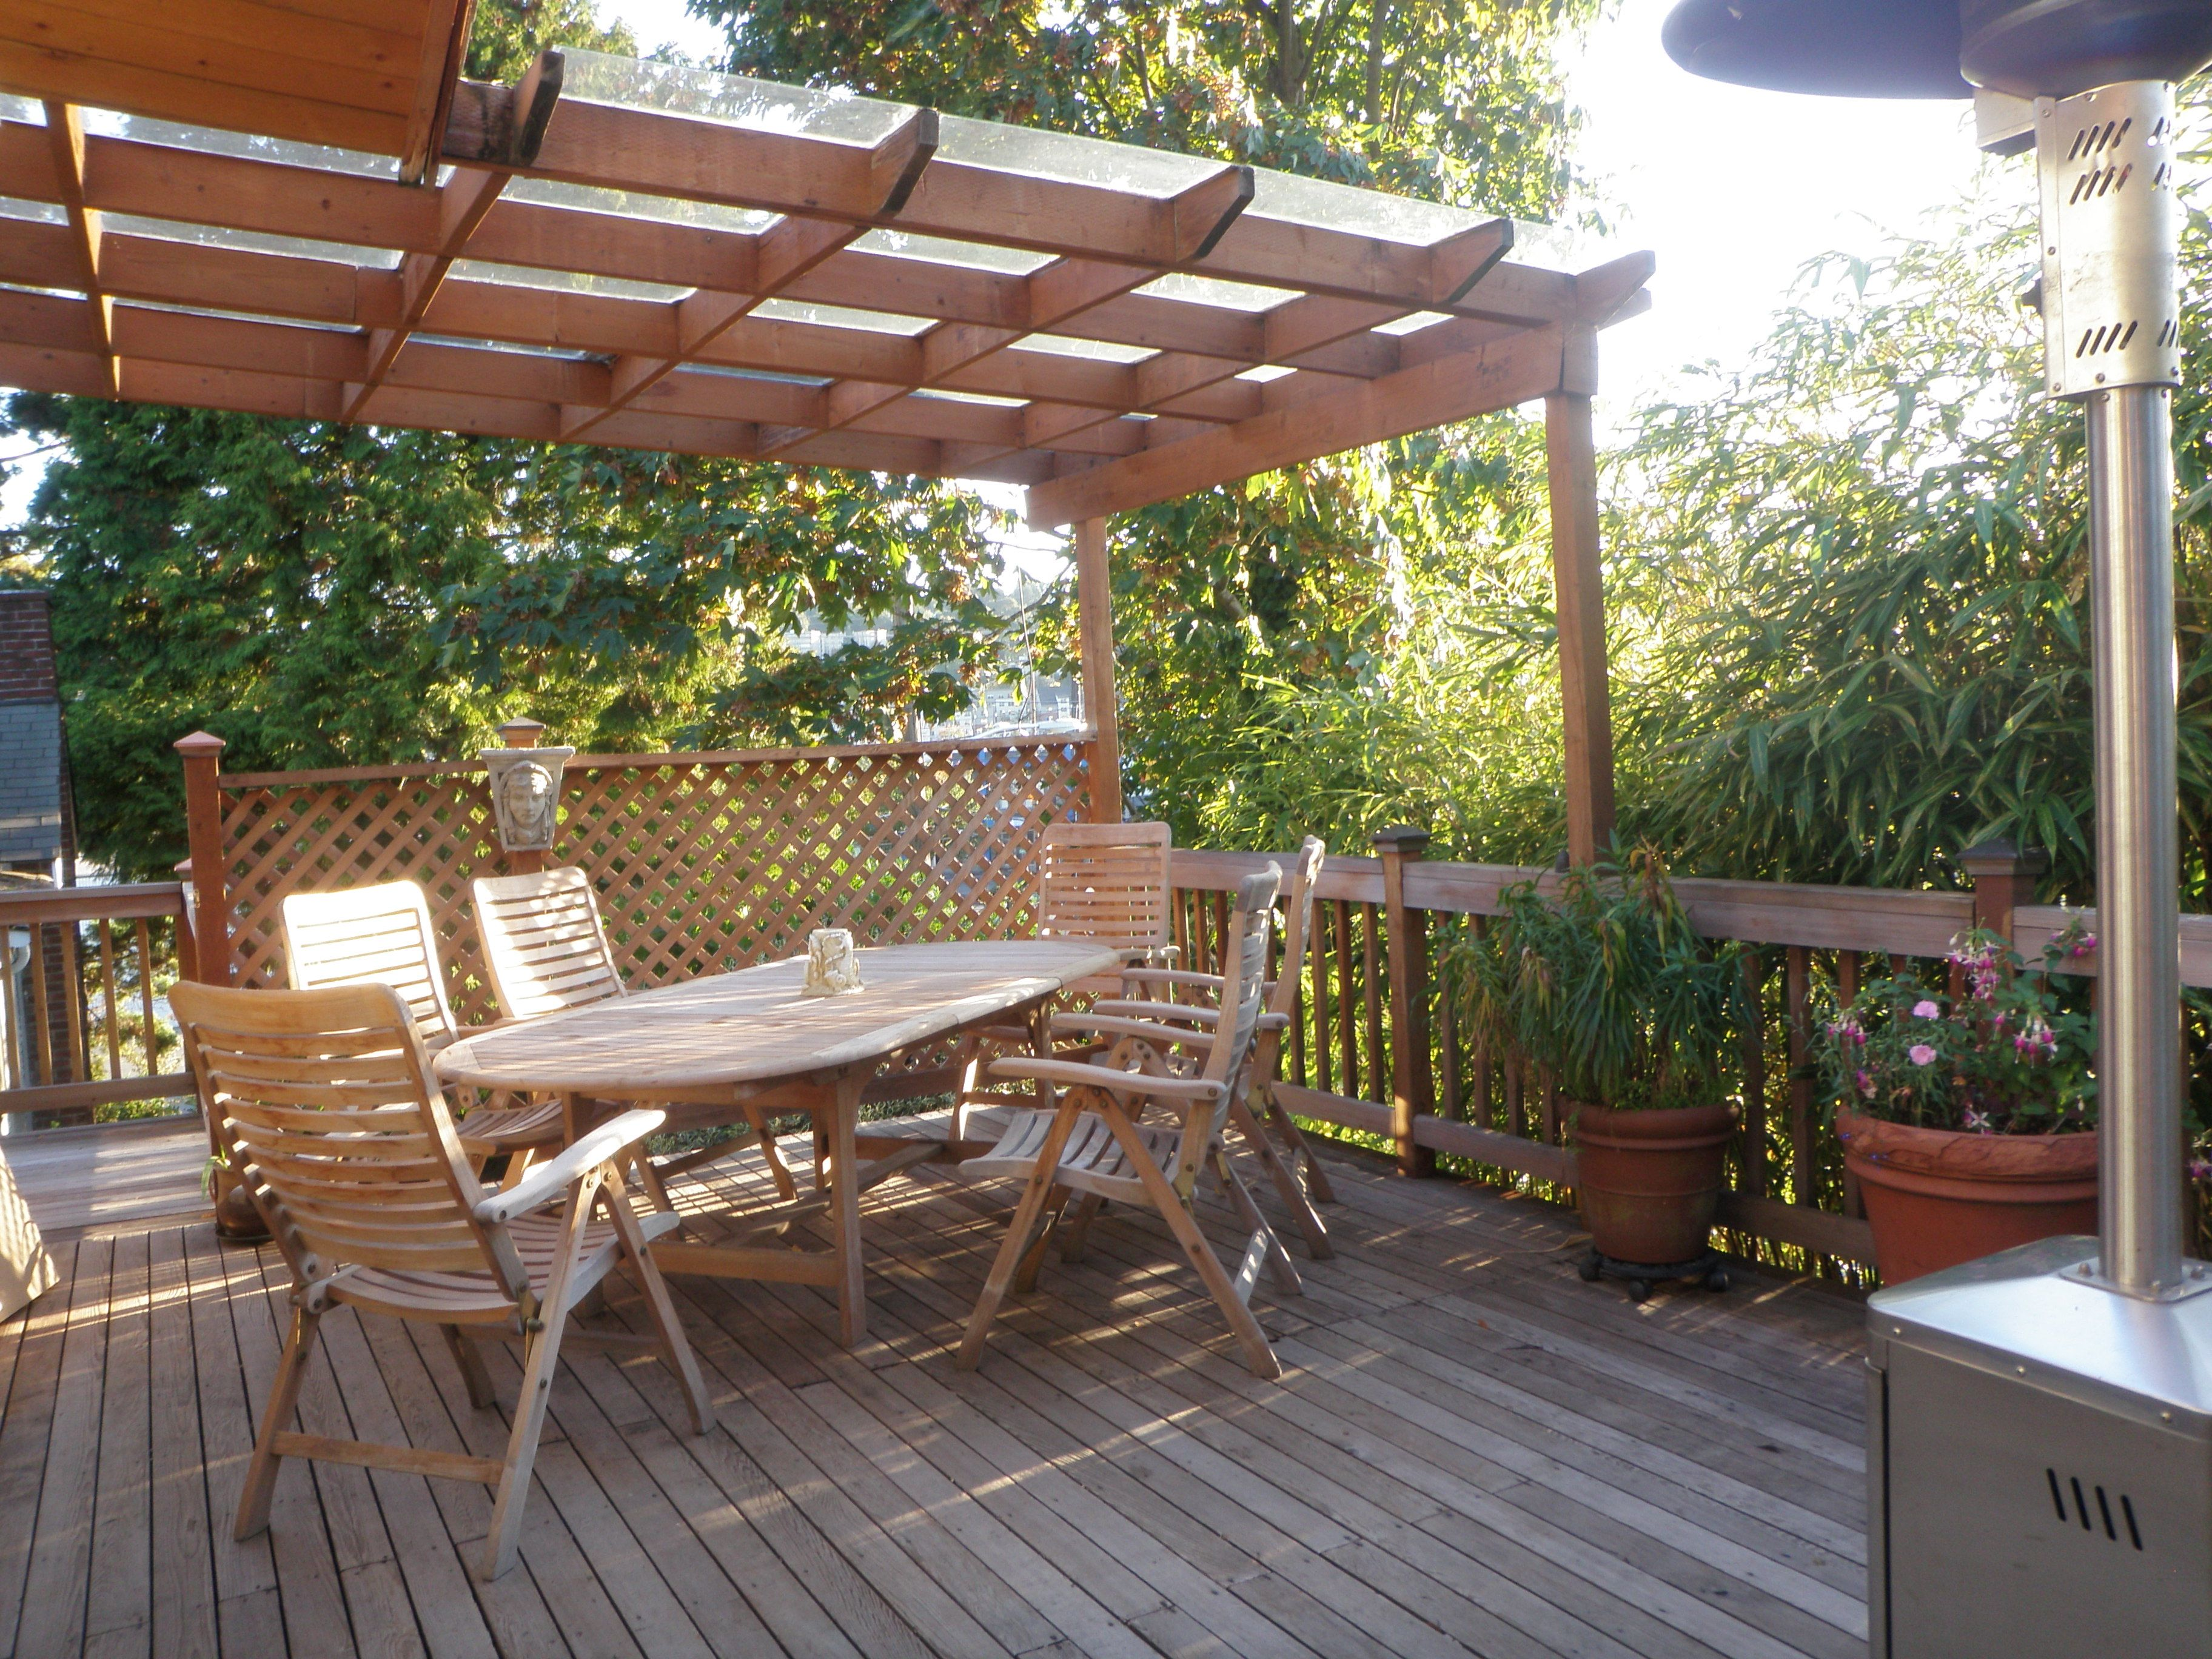 3 Level Deck With Hot Tub Table Chairs Covered Cooking